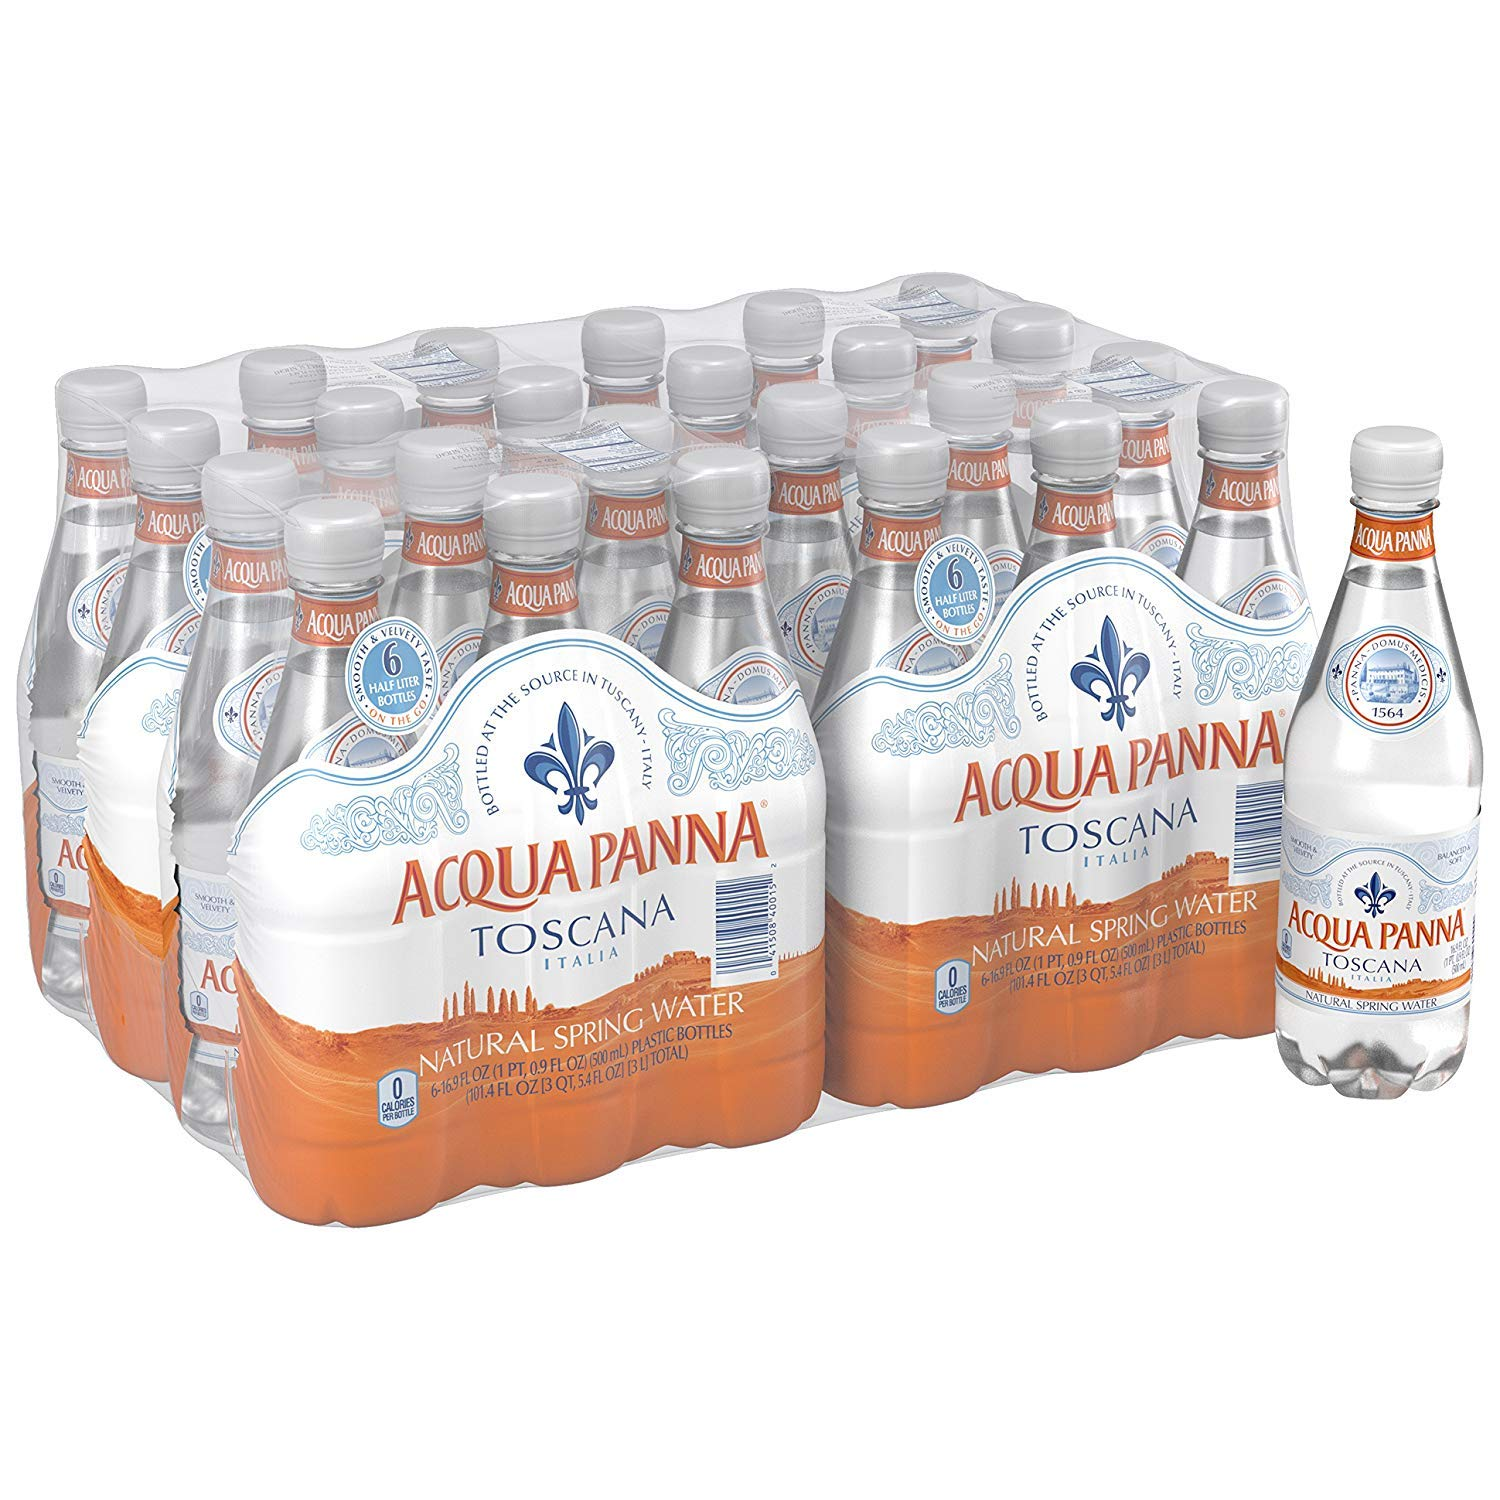 Acqua Panna FGHUEIG Natural Spring Water, 16.9-Ounce, 2 Cases of 24 Bottles